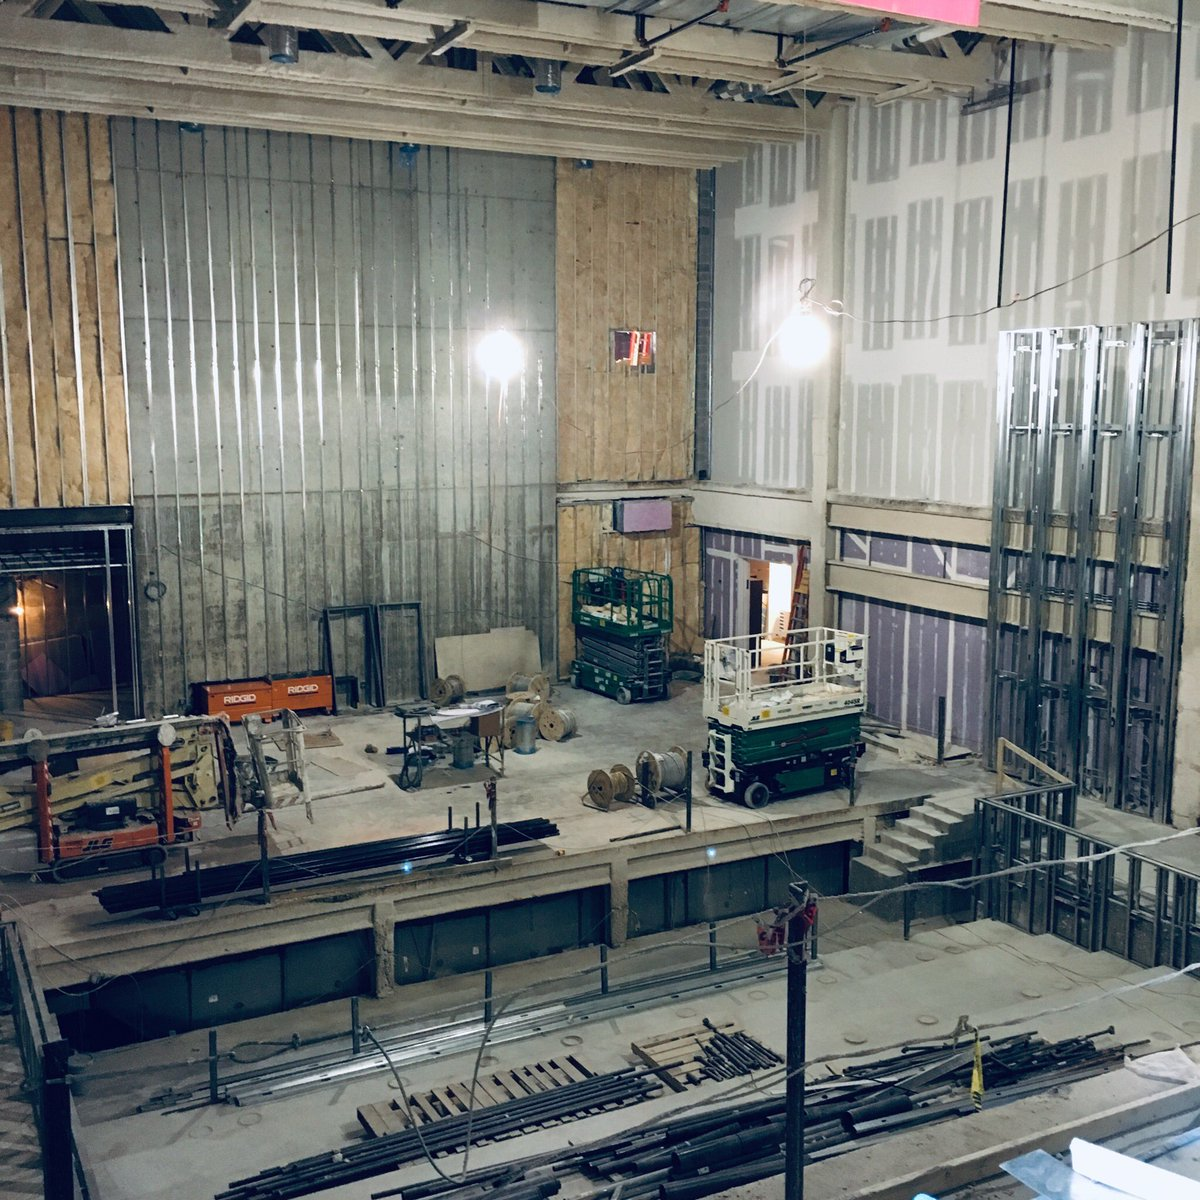 Theater and music 🎶 spaces taking shape at <a target='_blank' href='http://search.twitter.com/search?q=TheHeightsBuilding'><a target='_blank' href='https://twitter.com/hashtag/TheHeightsBuilding?src=hash'>#TheHeightsBuilding</a></a> providing great opportunities for <a target='_blank' href='http://twitter.com/APSArts'>@APSArts</a> and community use.   <a target='_blank' href='http://search.twitter.com/search?q=LoveHB'><a target='_blank' href='https://twitter.com/hashtag/LoveHB?src=hash'>#LoveHB</a></a> <a target='_blank' href='http://twitter.com/HBWProgram'>@HBWProgram</a> <a target='_blank' href='http://twitter.com/StratfordKG'>@StratfordKG</a> <a target='_blank' href='http://search.twitter.com/search?q=WilsonSite'><a target='_blank' href='https://twitter.com/hashtag/WilsonSite?src=hash'>#WilsonSite</a></a> <a target='_blank' href='http://twitter.com/RosslynVA'>@RosslynVA</a> <a target='_blank' href='https://t.co/6qVLRuIIHl'>https://t.co/6qVLRuIIHl</a>